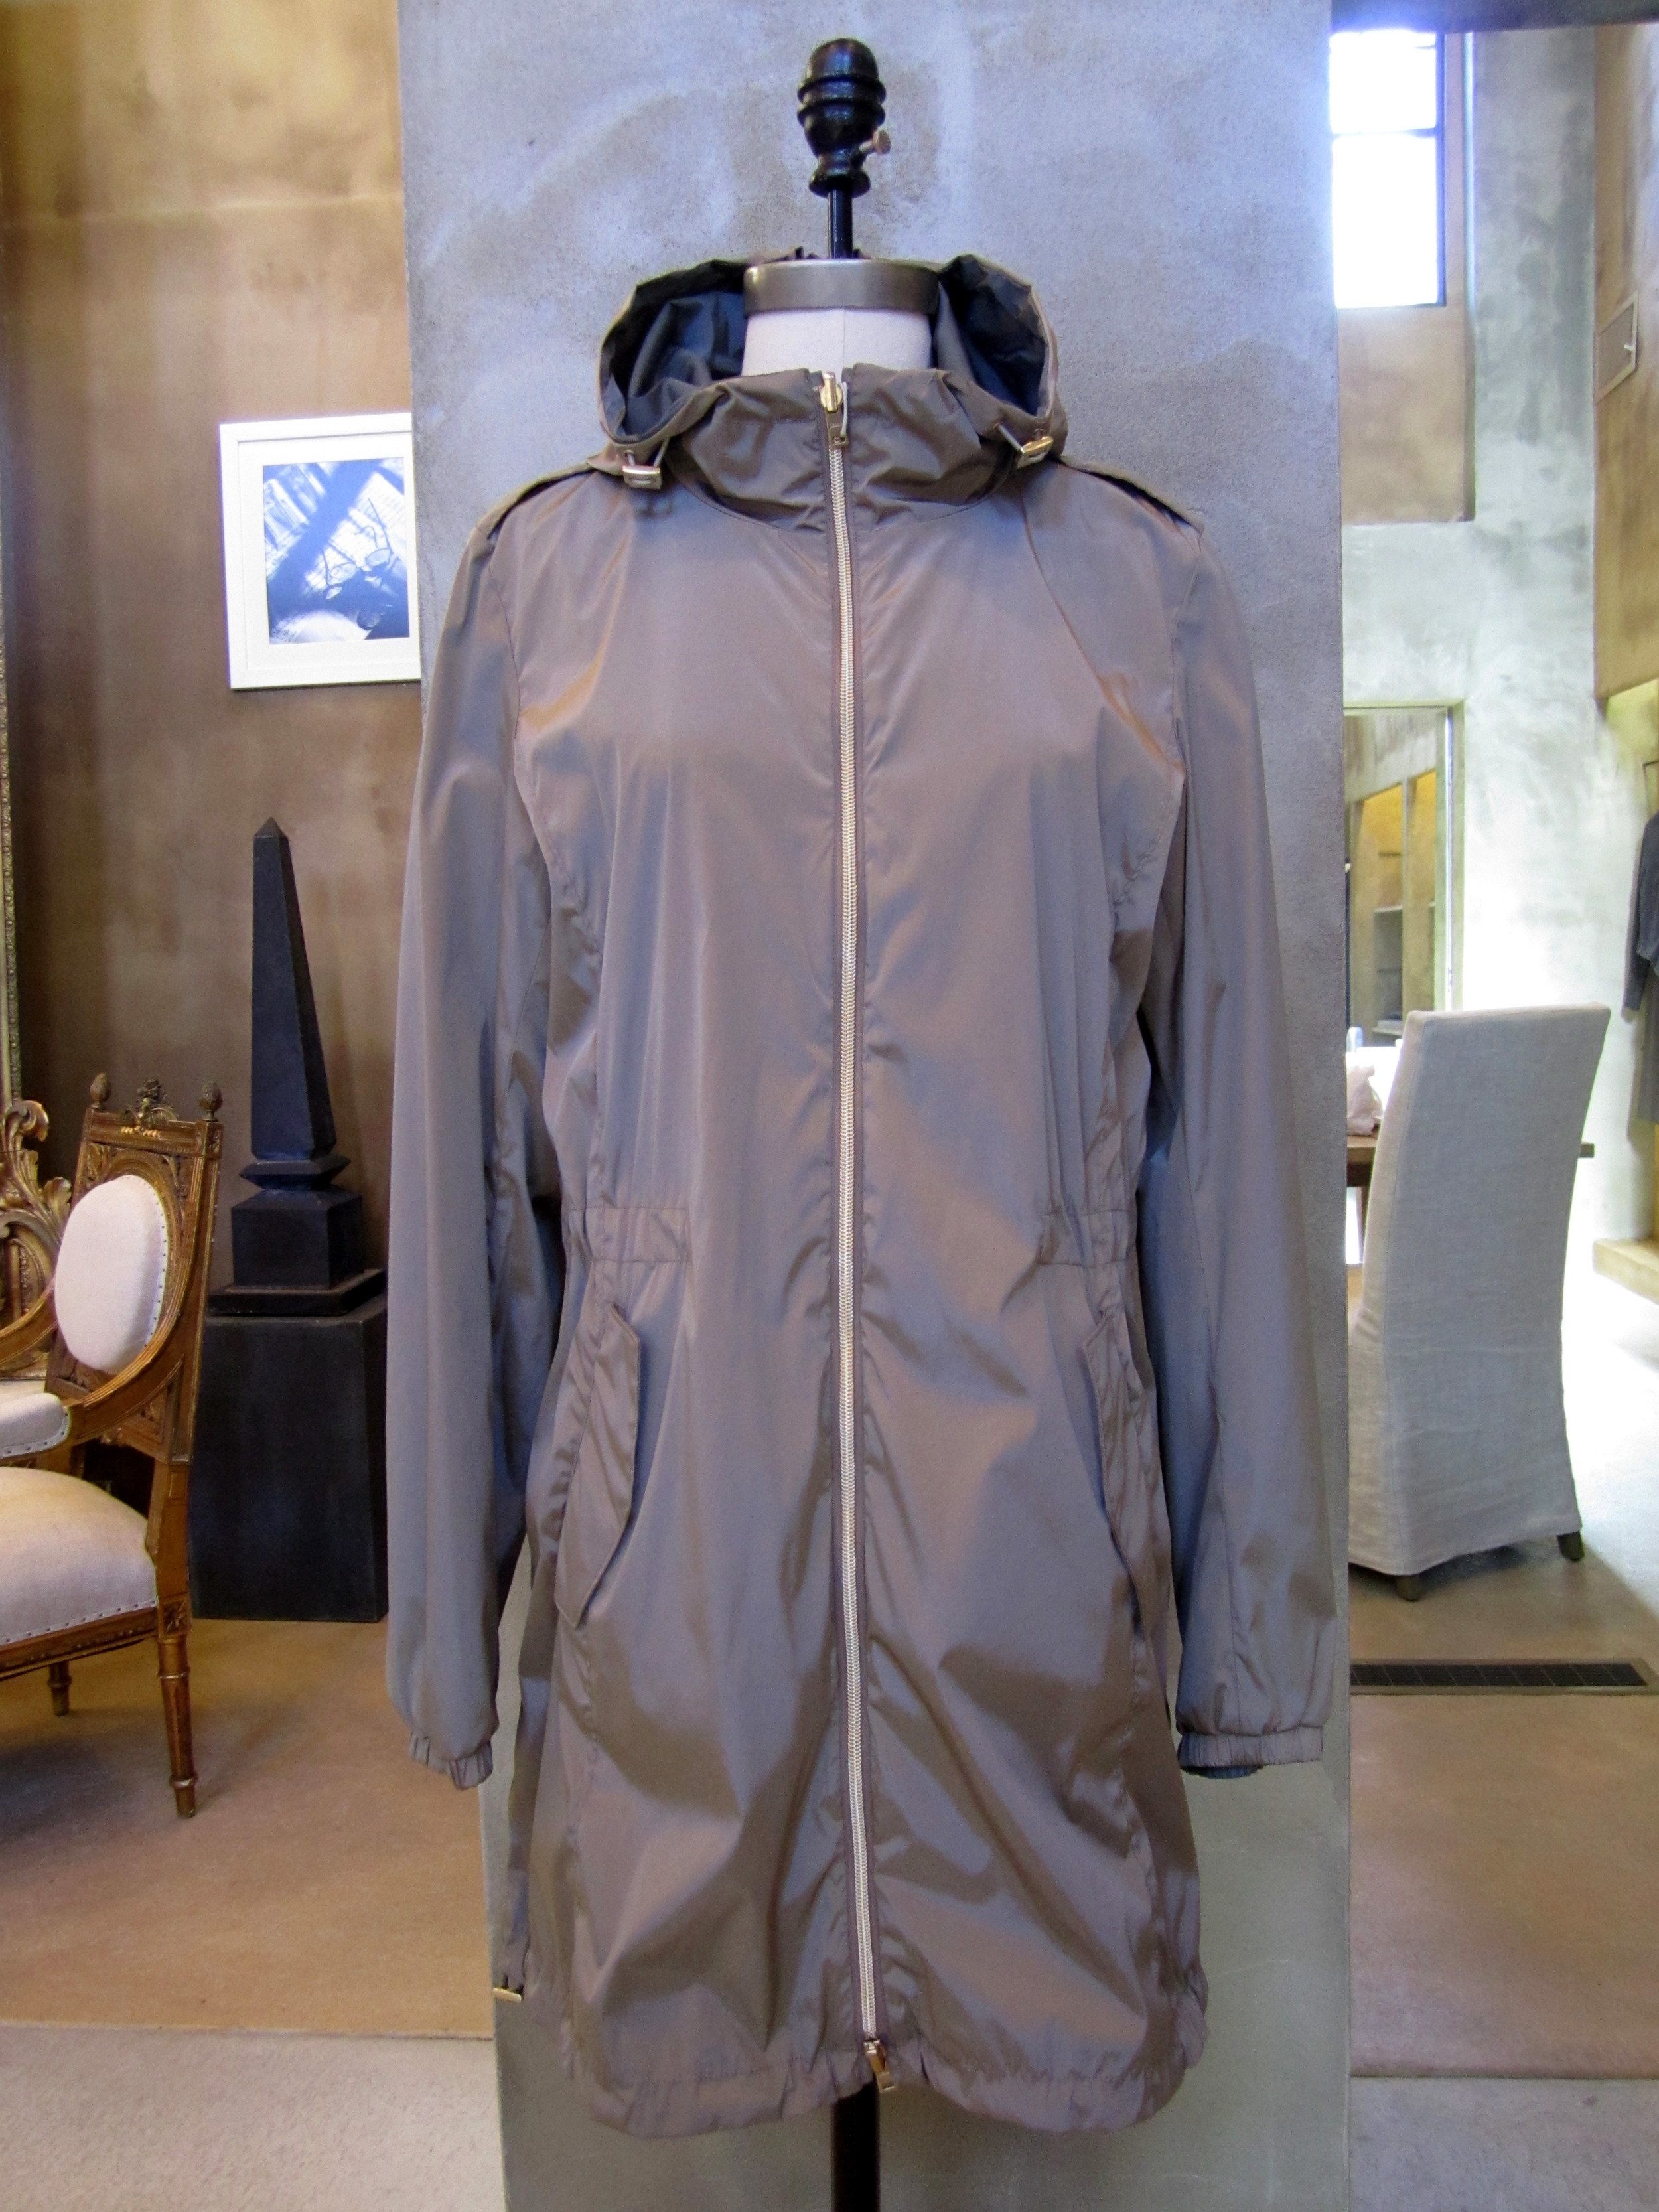 Herno Reversible Nylon Raincoat with Hood. Taupe / Dark Grey. Made in Italy. $995. Available in size 10.